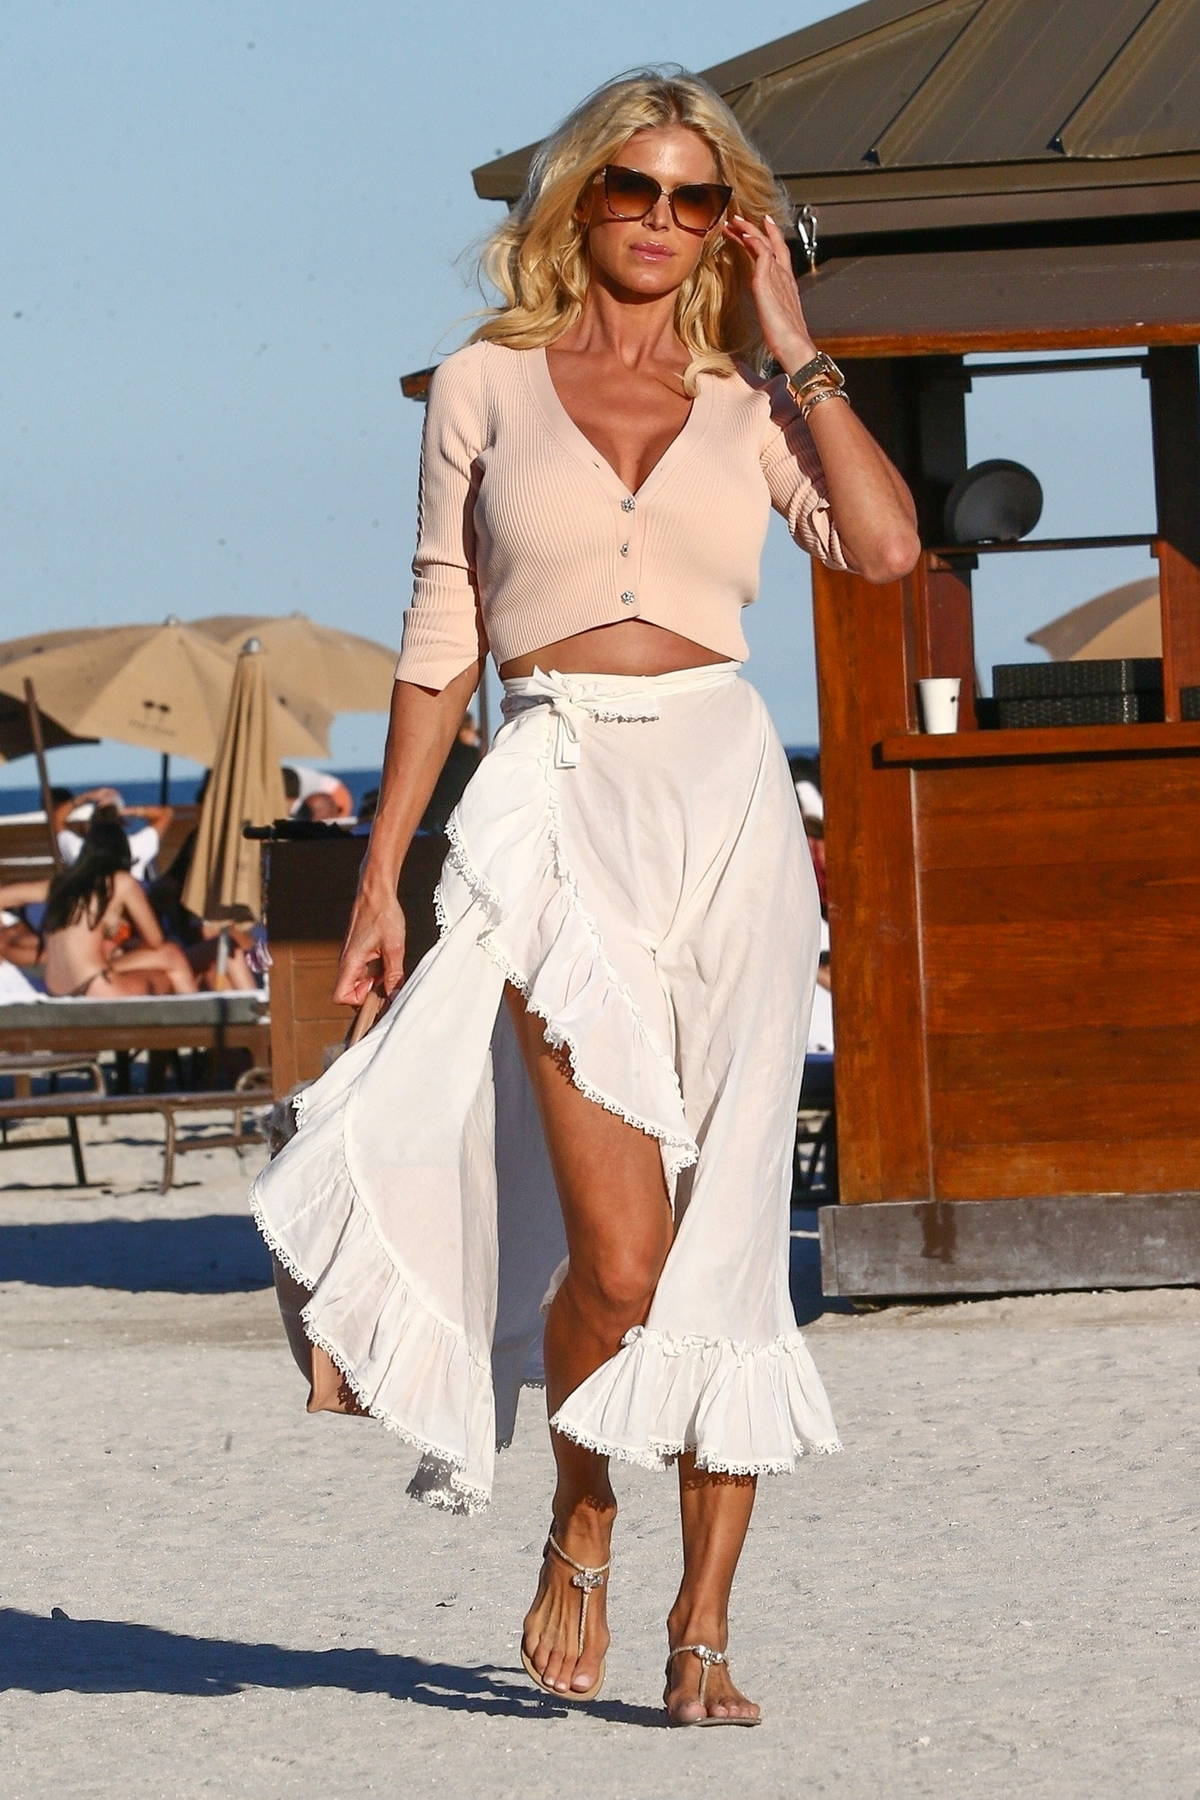 Victoria Silvstedt enjoys an afternoon soaking up the sun with friends in Miami, Florida